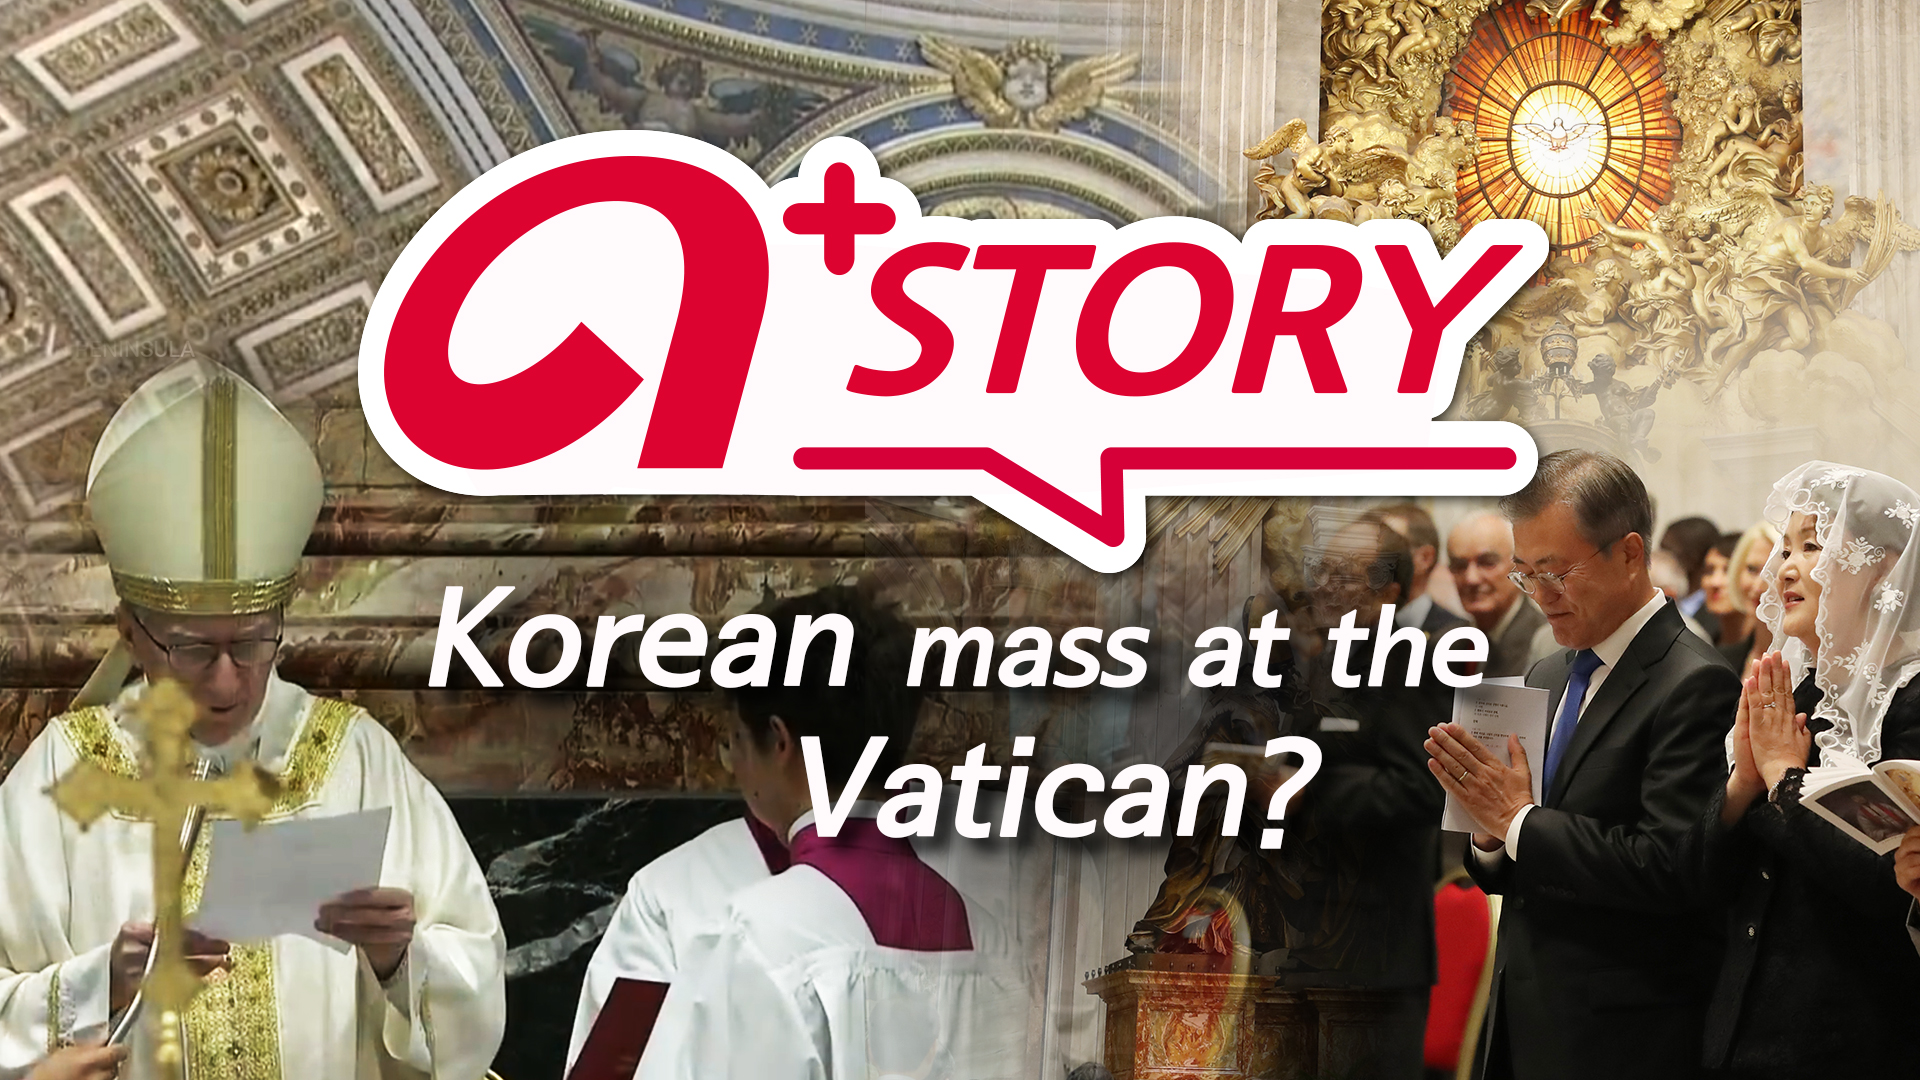 [A+Story] Korean mass at the Vatican? ⛪